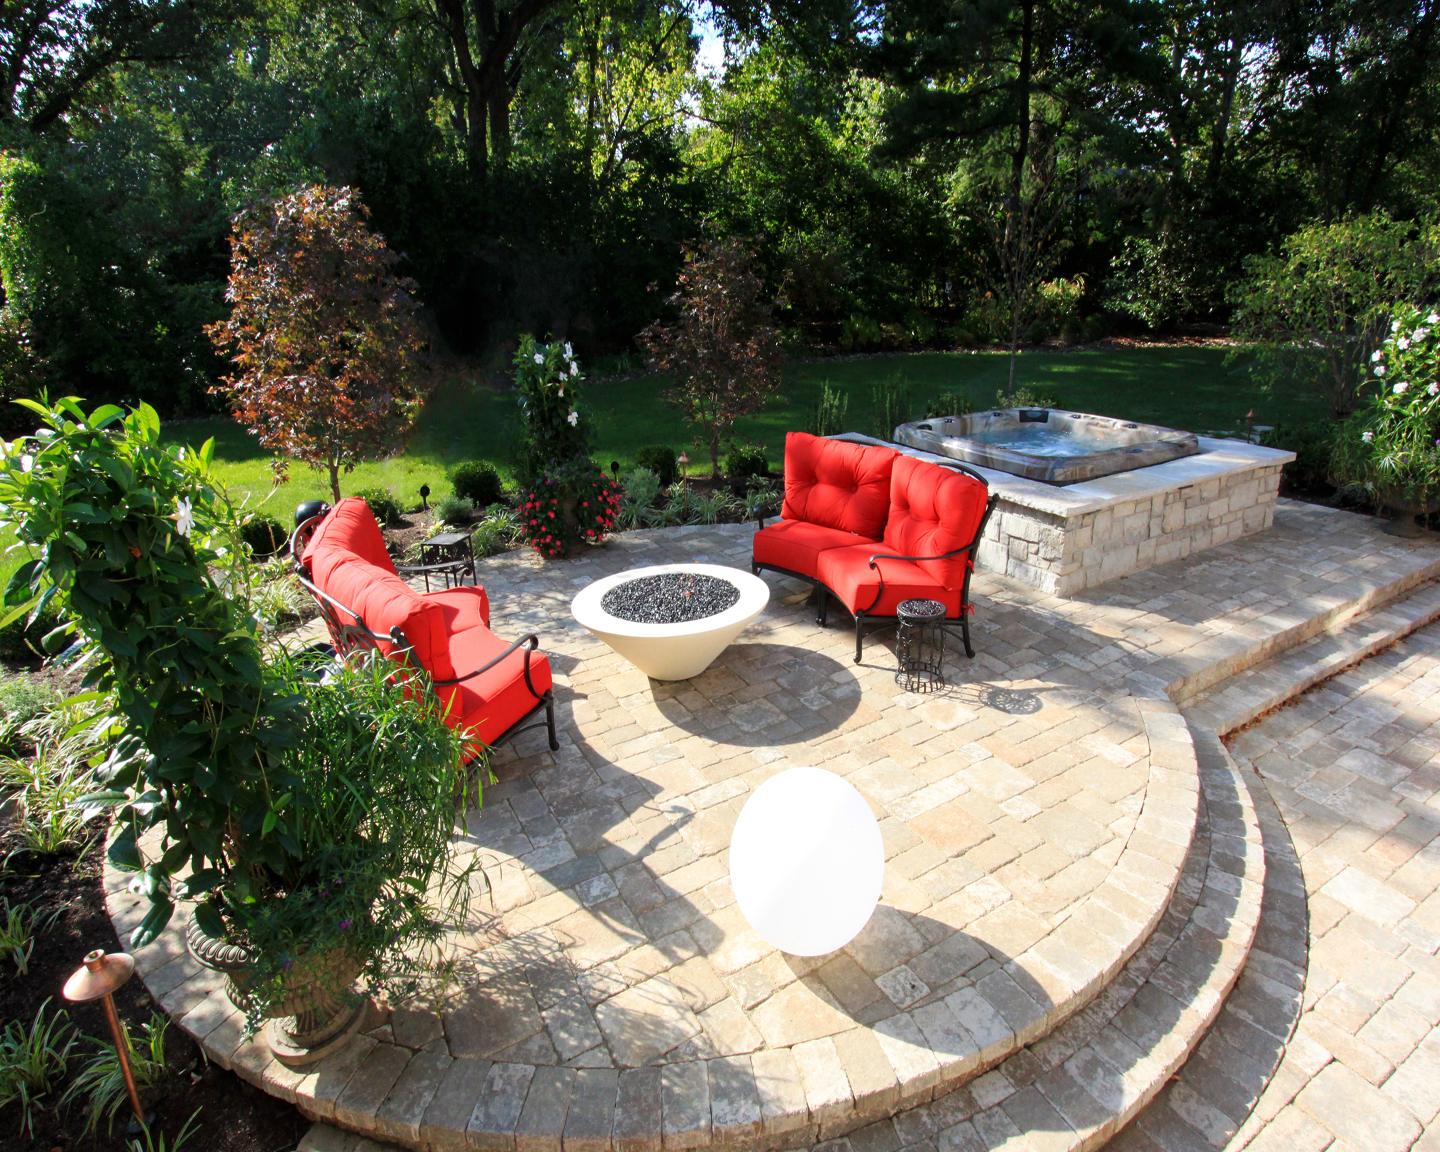 How about entertaining with a fire pit, lush green space and a hot tub in your backyard?